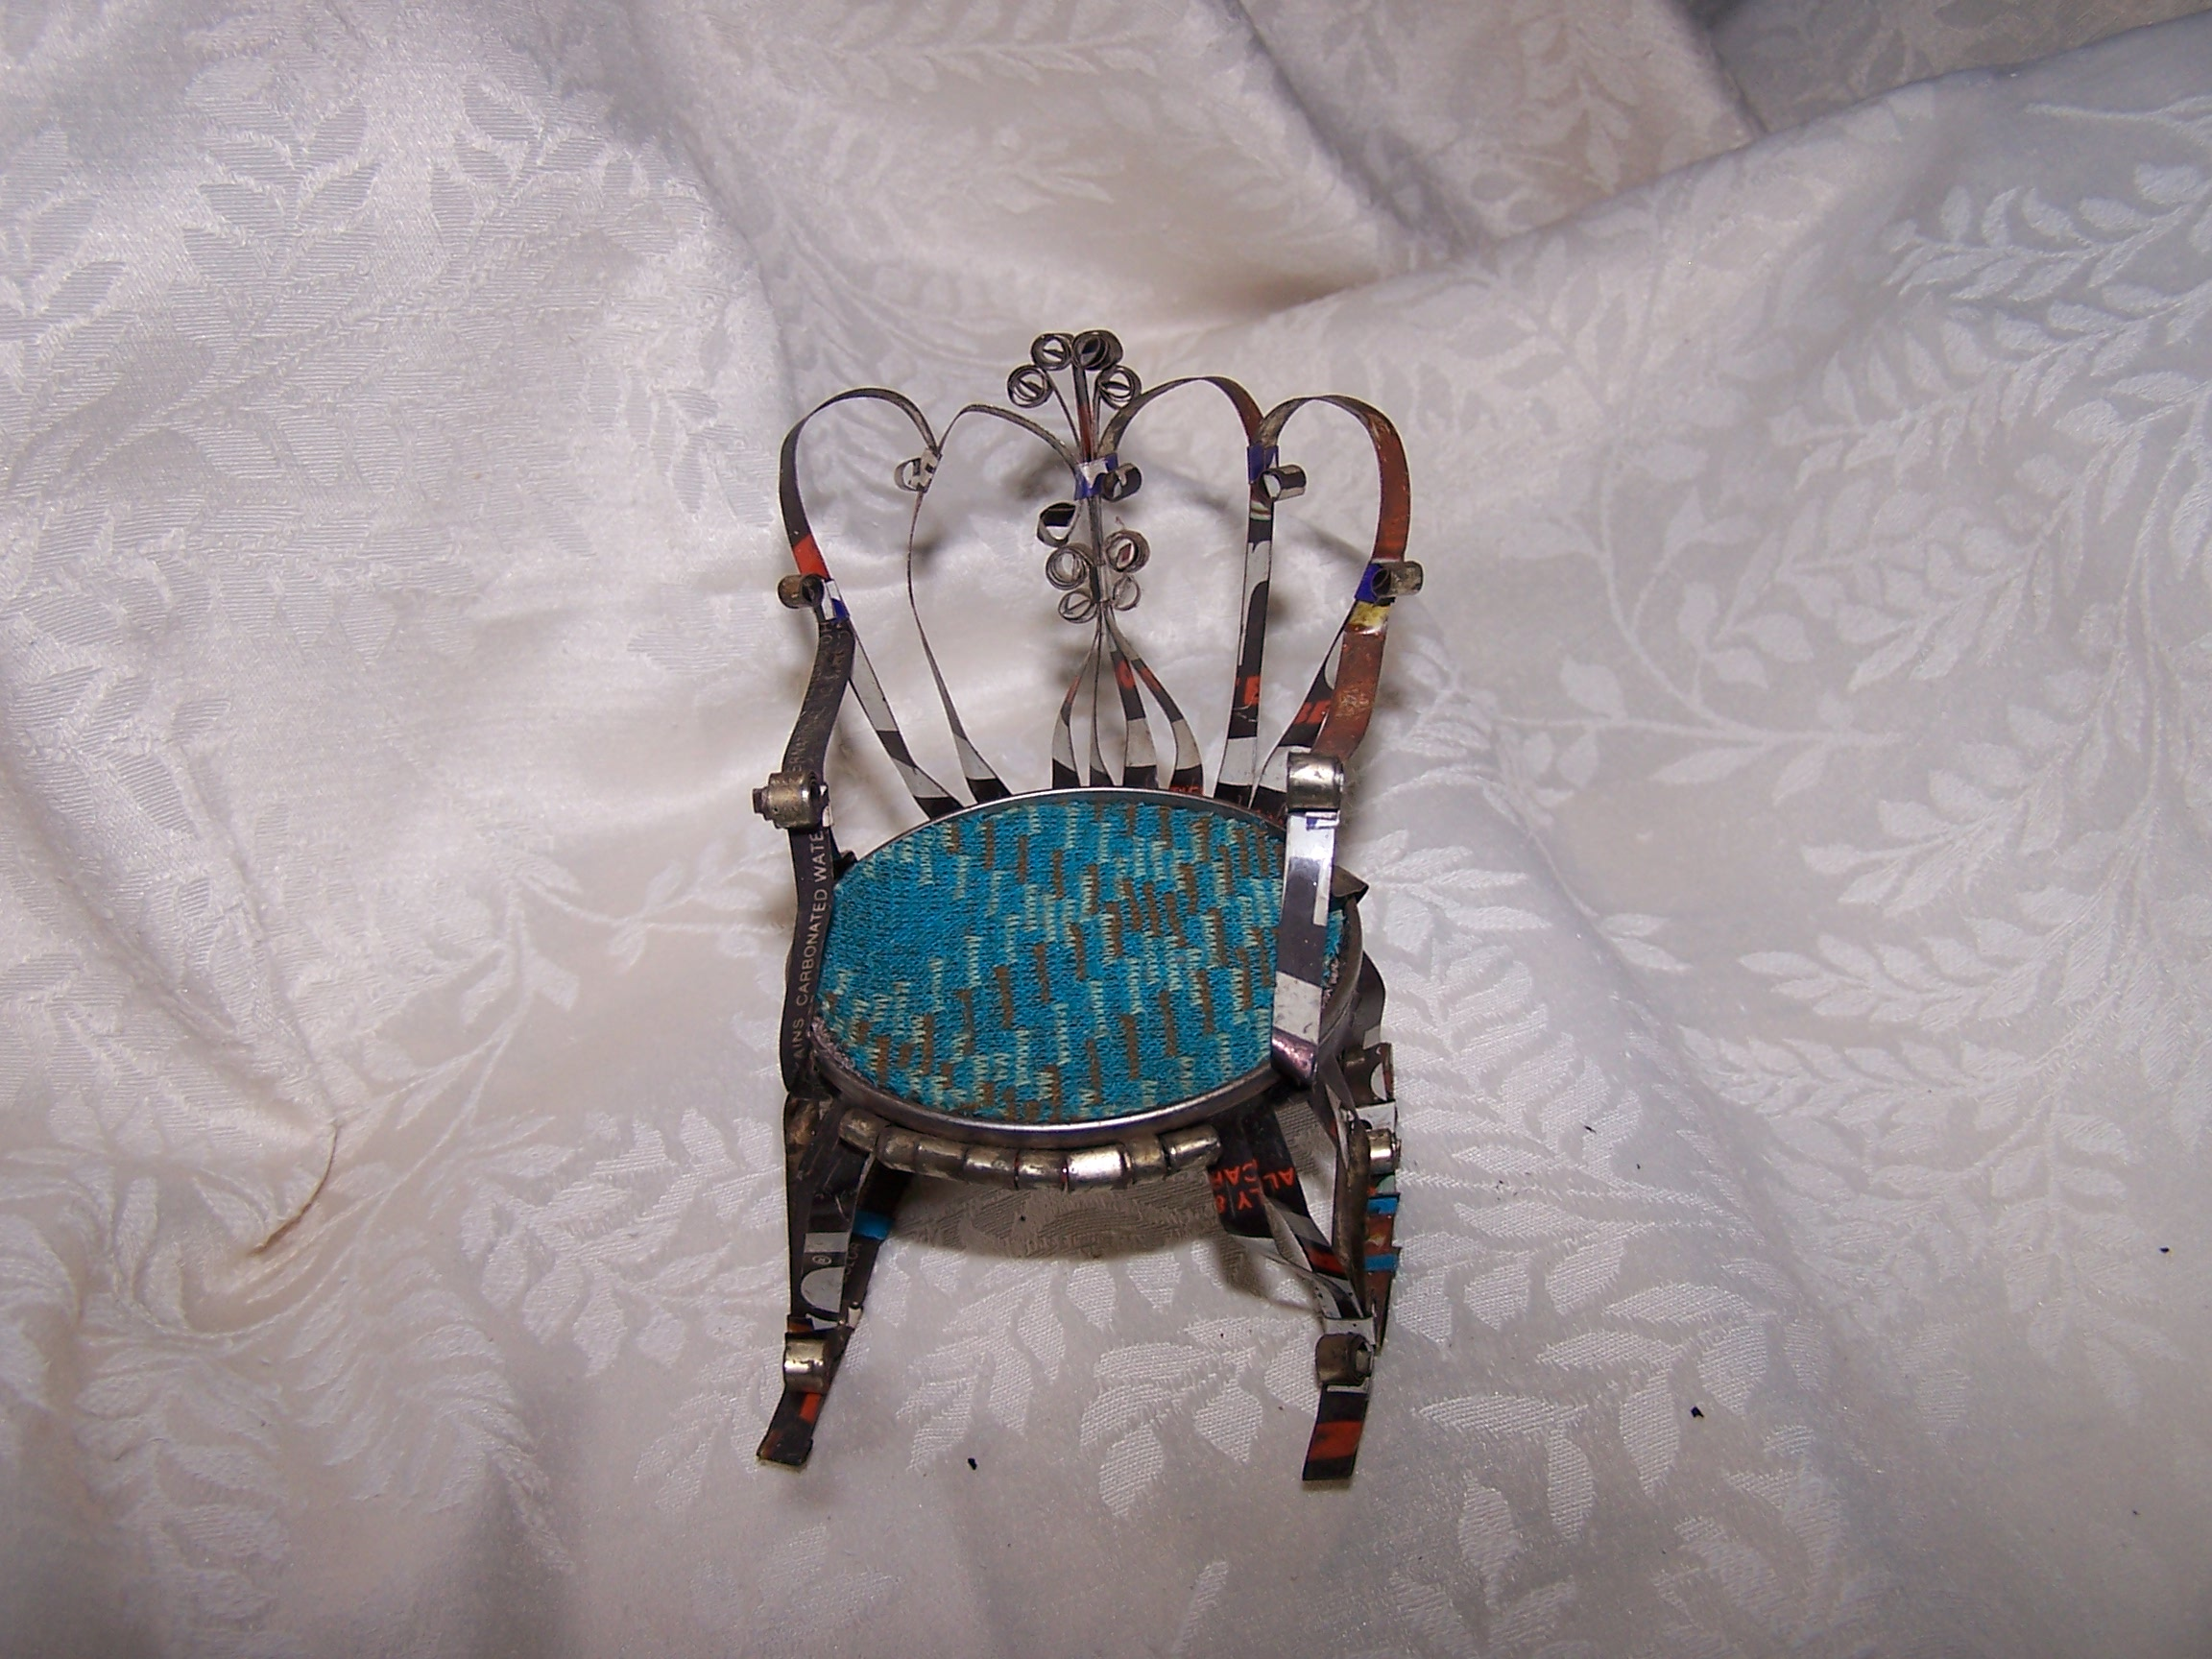 Quilled Rocking Chair, Unpainted, Vintage